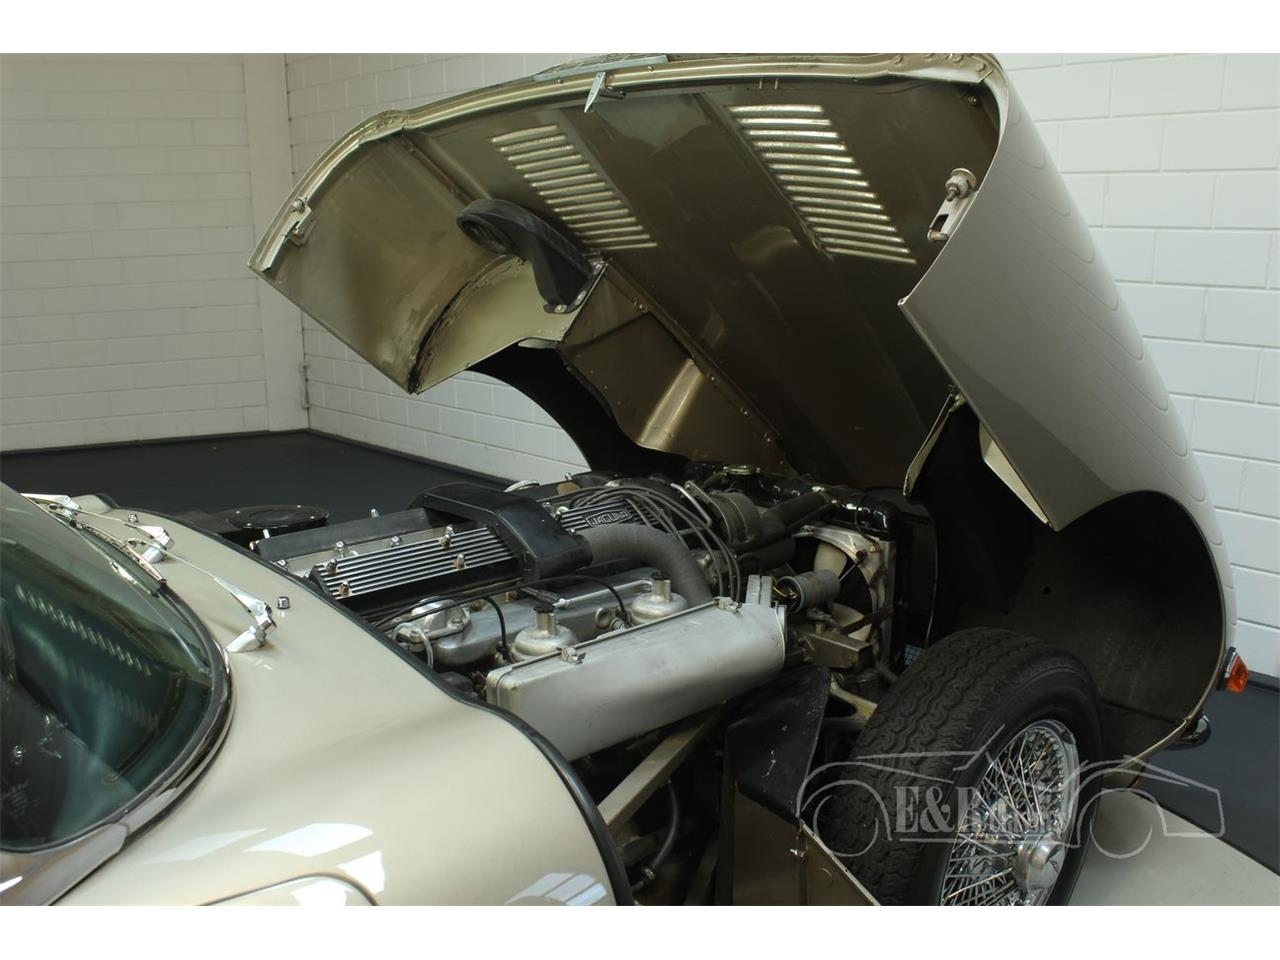 Large Picture of '70 Jaguar E-Type located in Waalwijk - Keine Angabe - Offered by E & R Classics - PH40